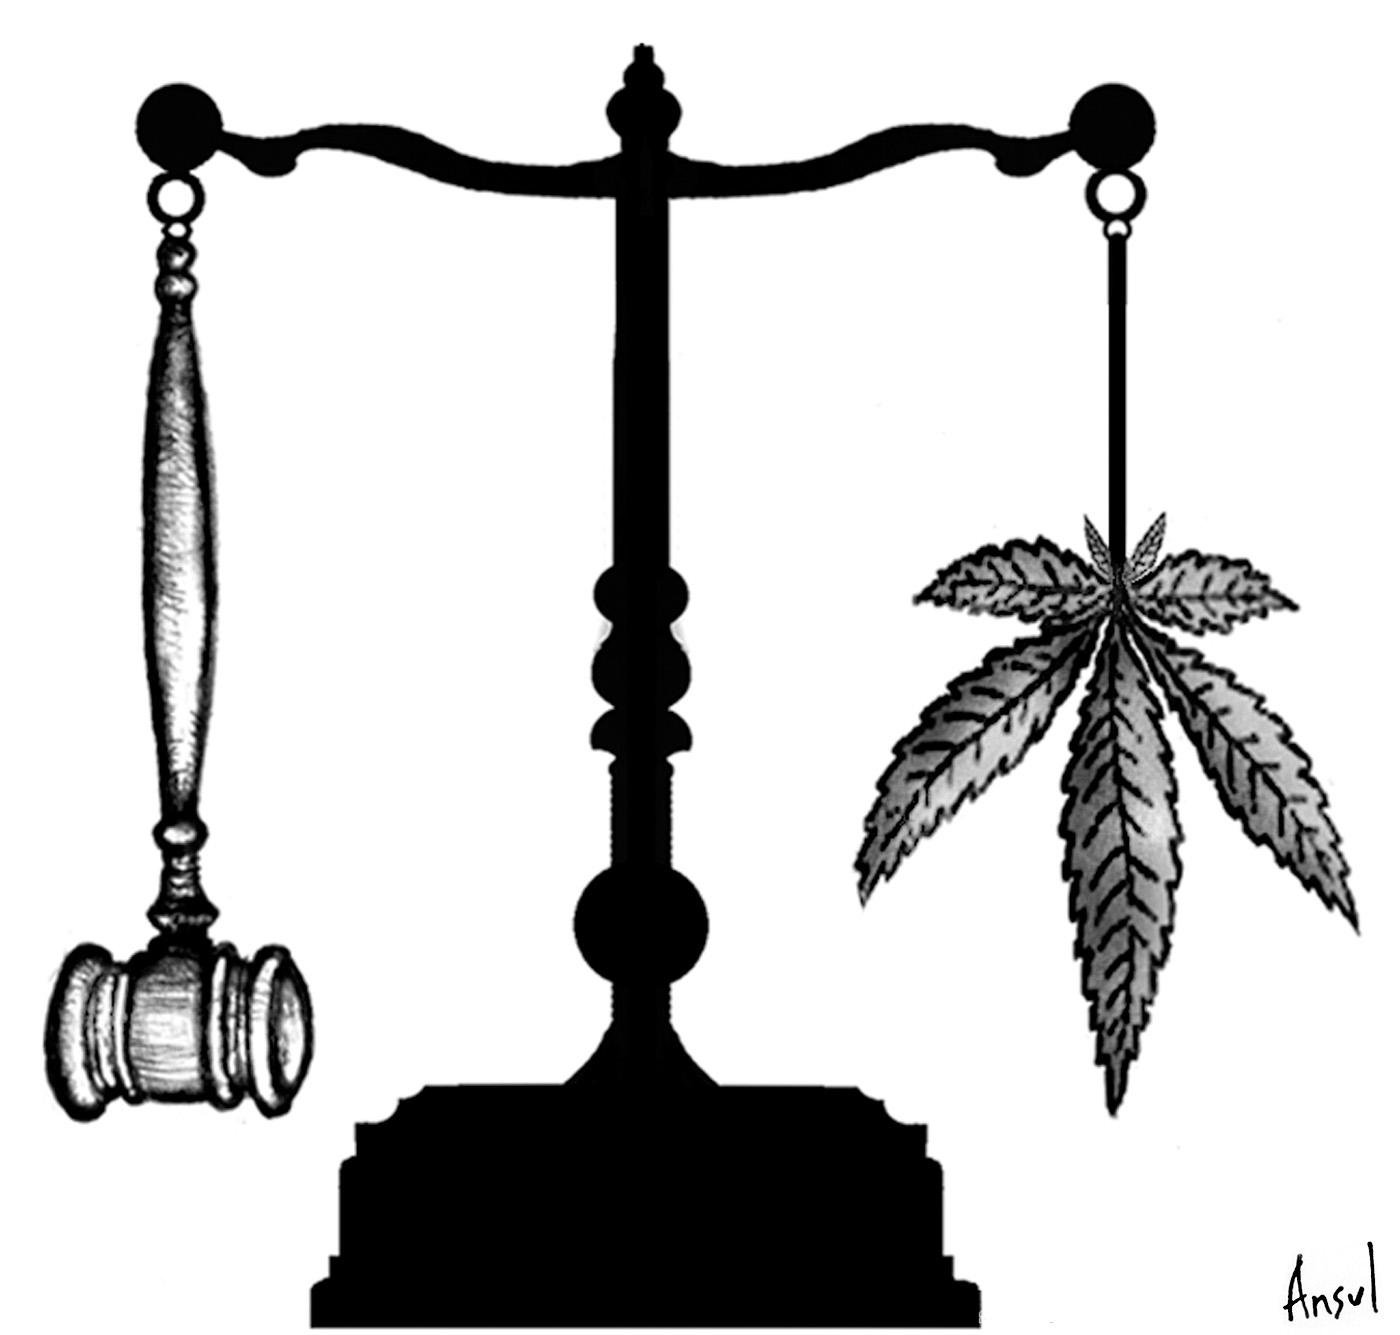 Marijuana diversion works, but it's not enough (opinion)